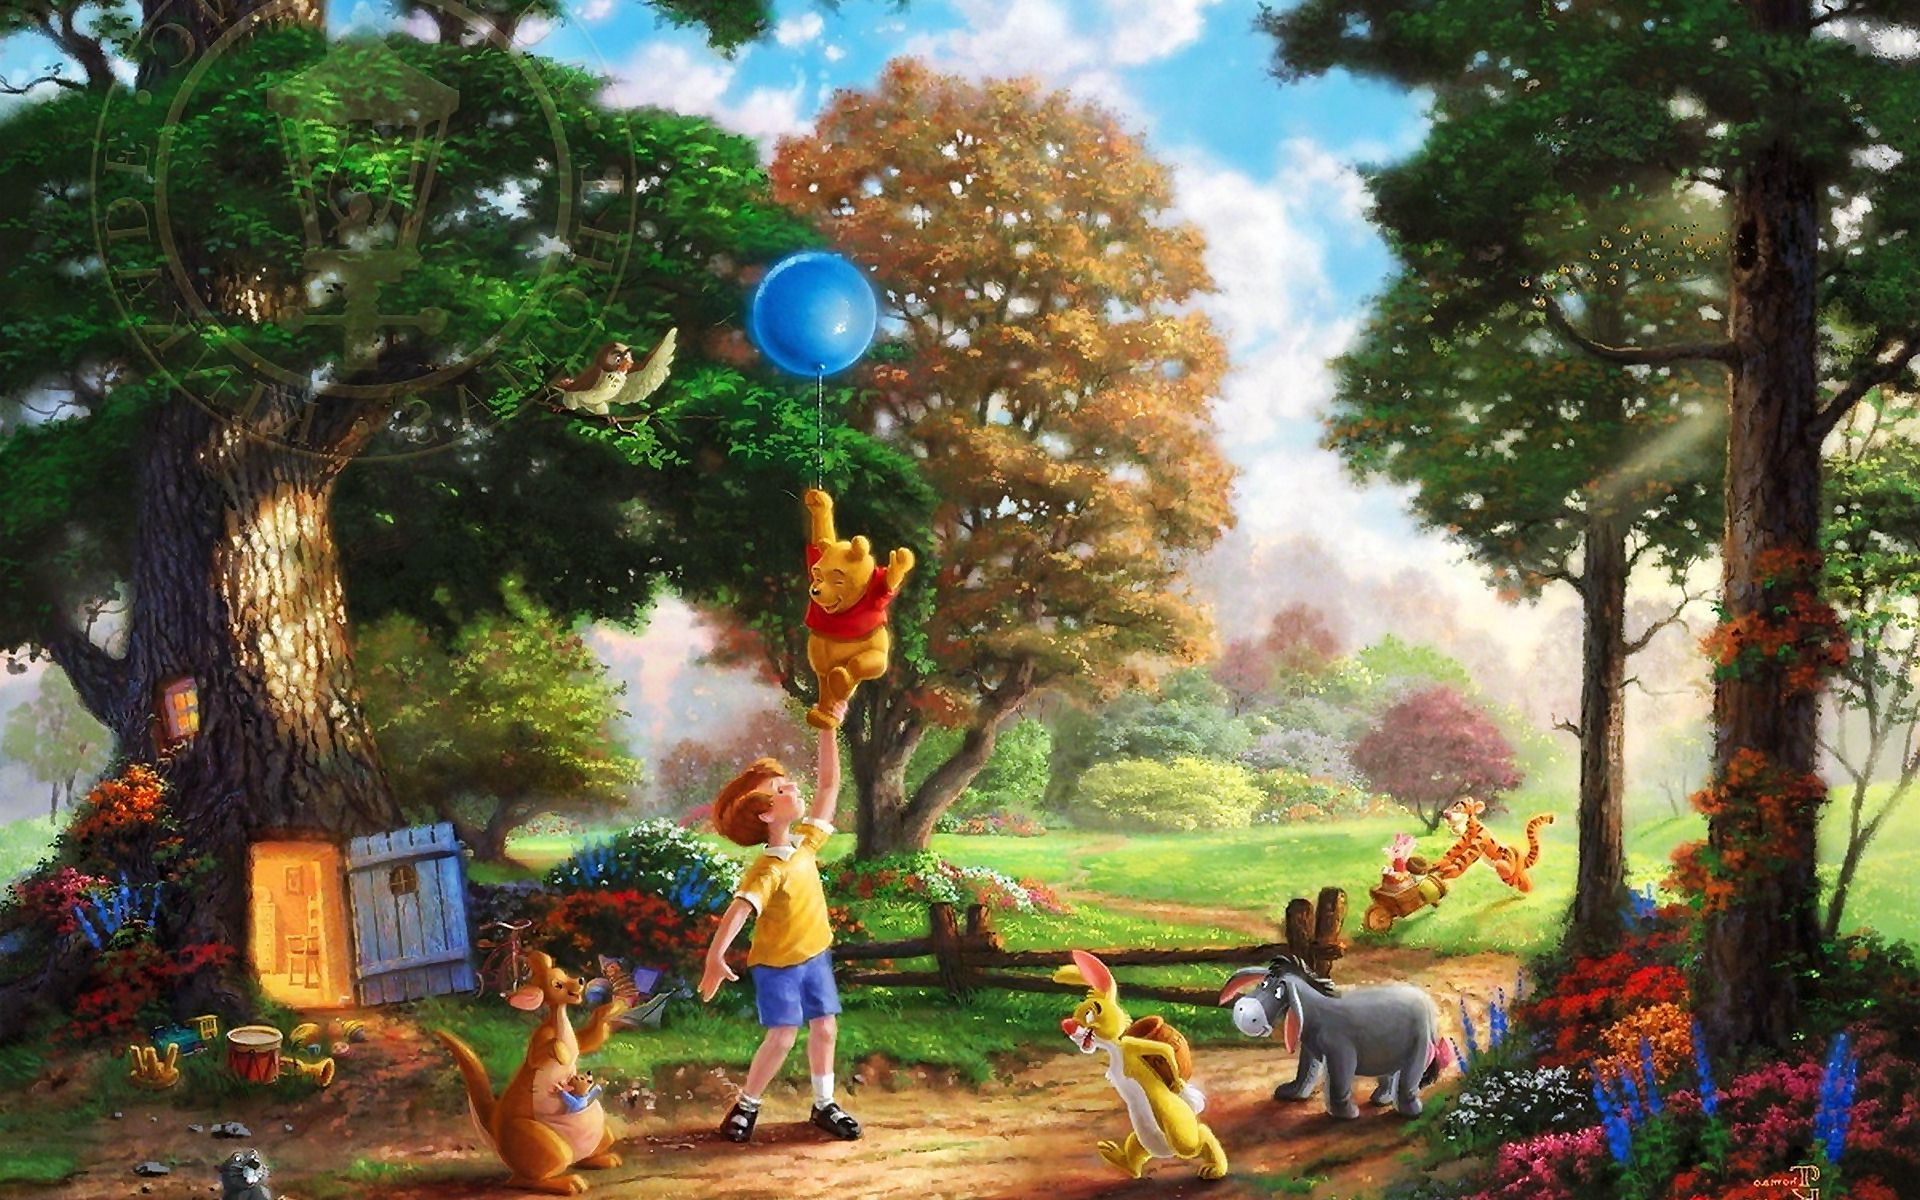 Winnie The Pooh Thomas Kinkade Wallpaper Images Pictures Photos Hd